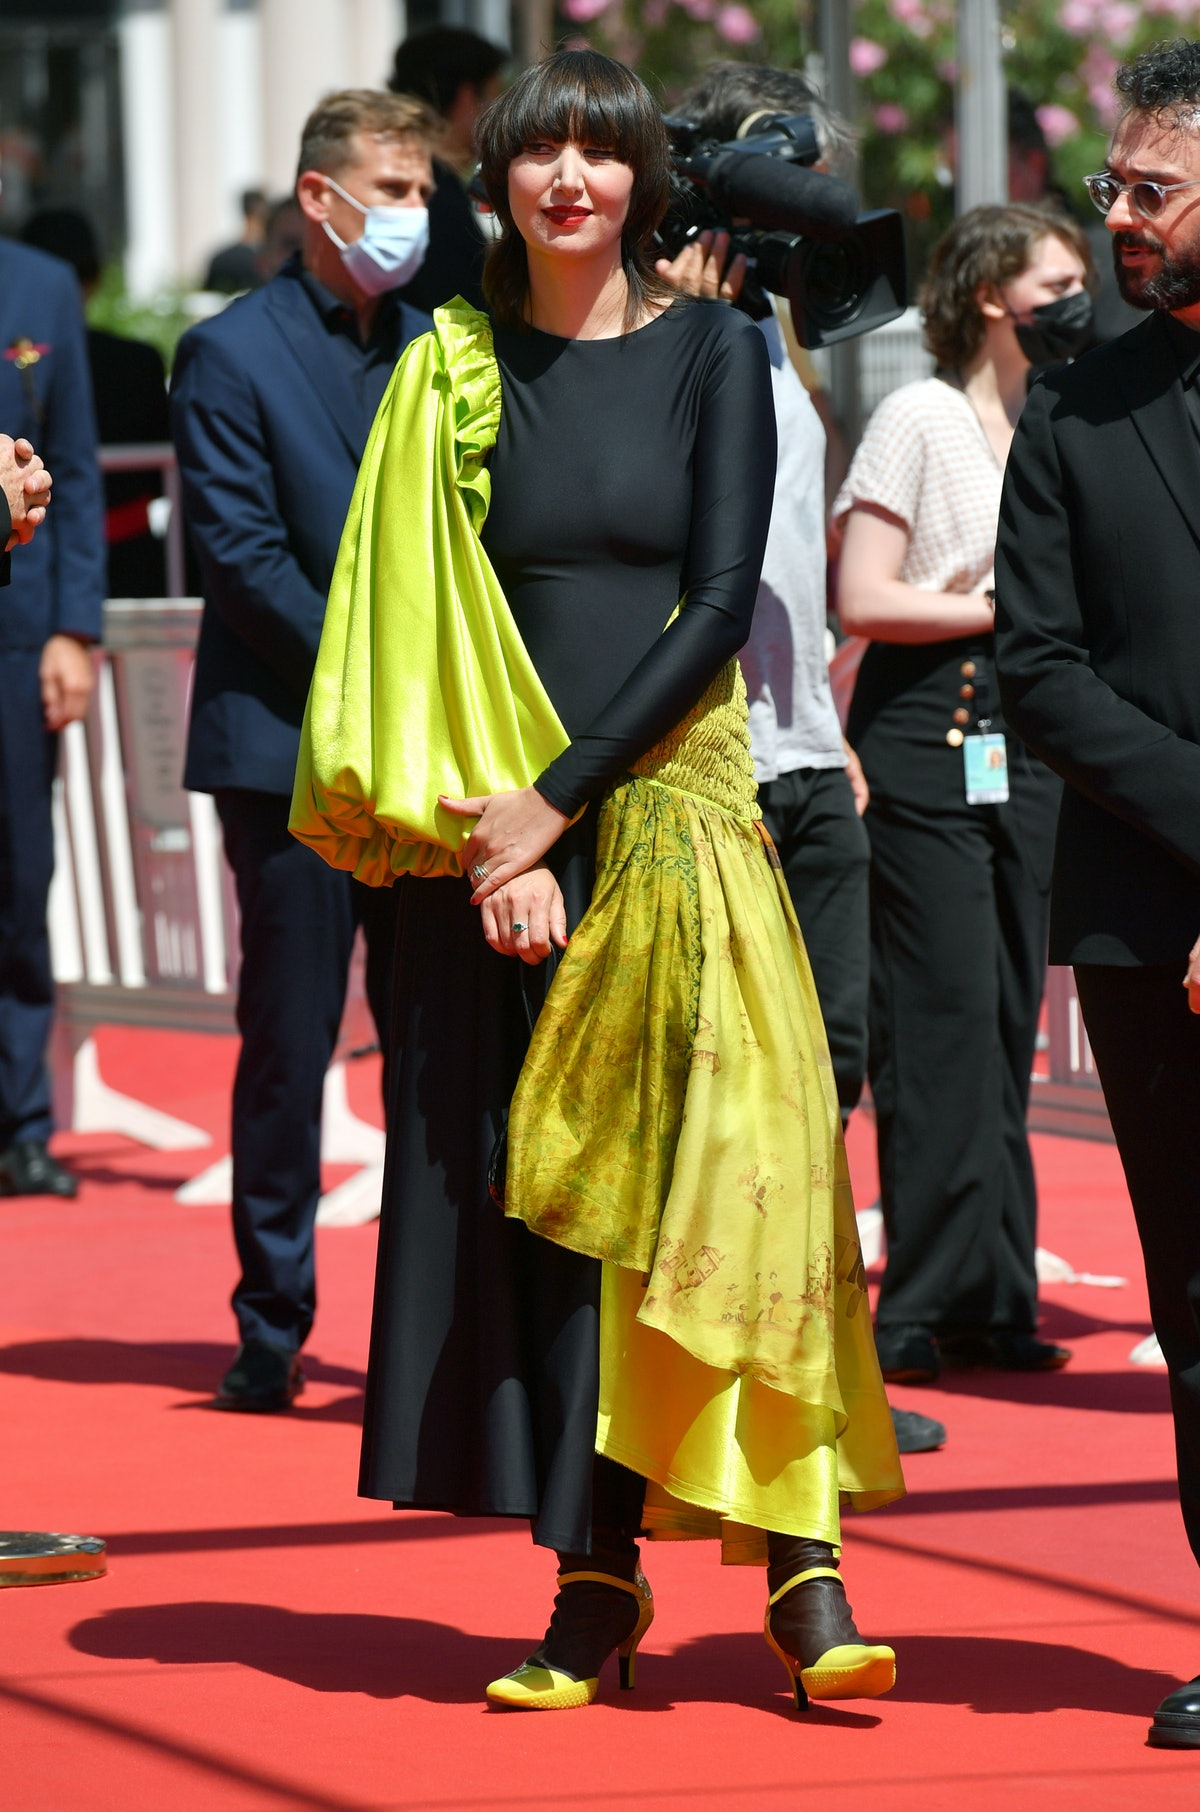 """CANNES, FRANCE - JULY 09: Karen O attends the """"Where Is Anne Frank"""" screening during the 74th annual Cannes Film Festival on July 09, 2021 in Cannes, France. (Photo by Dominique Charriau/WireImage)"""